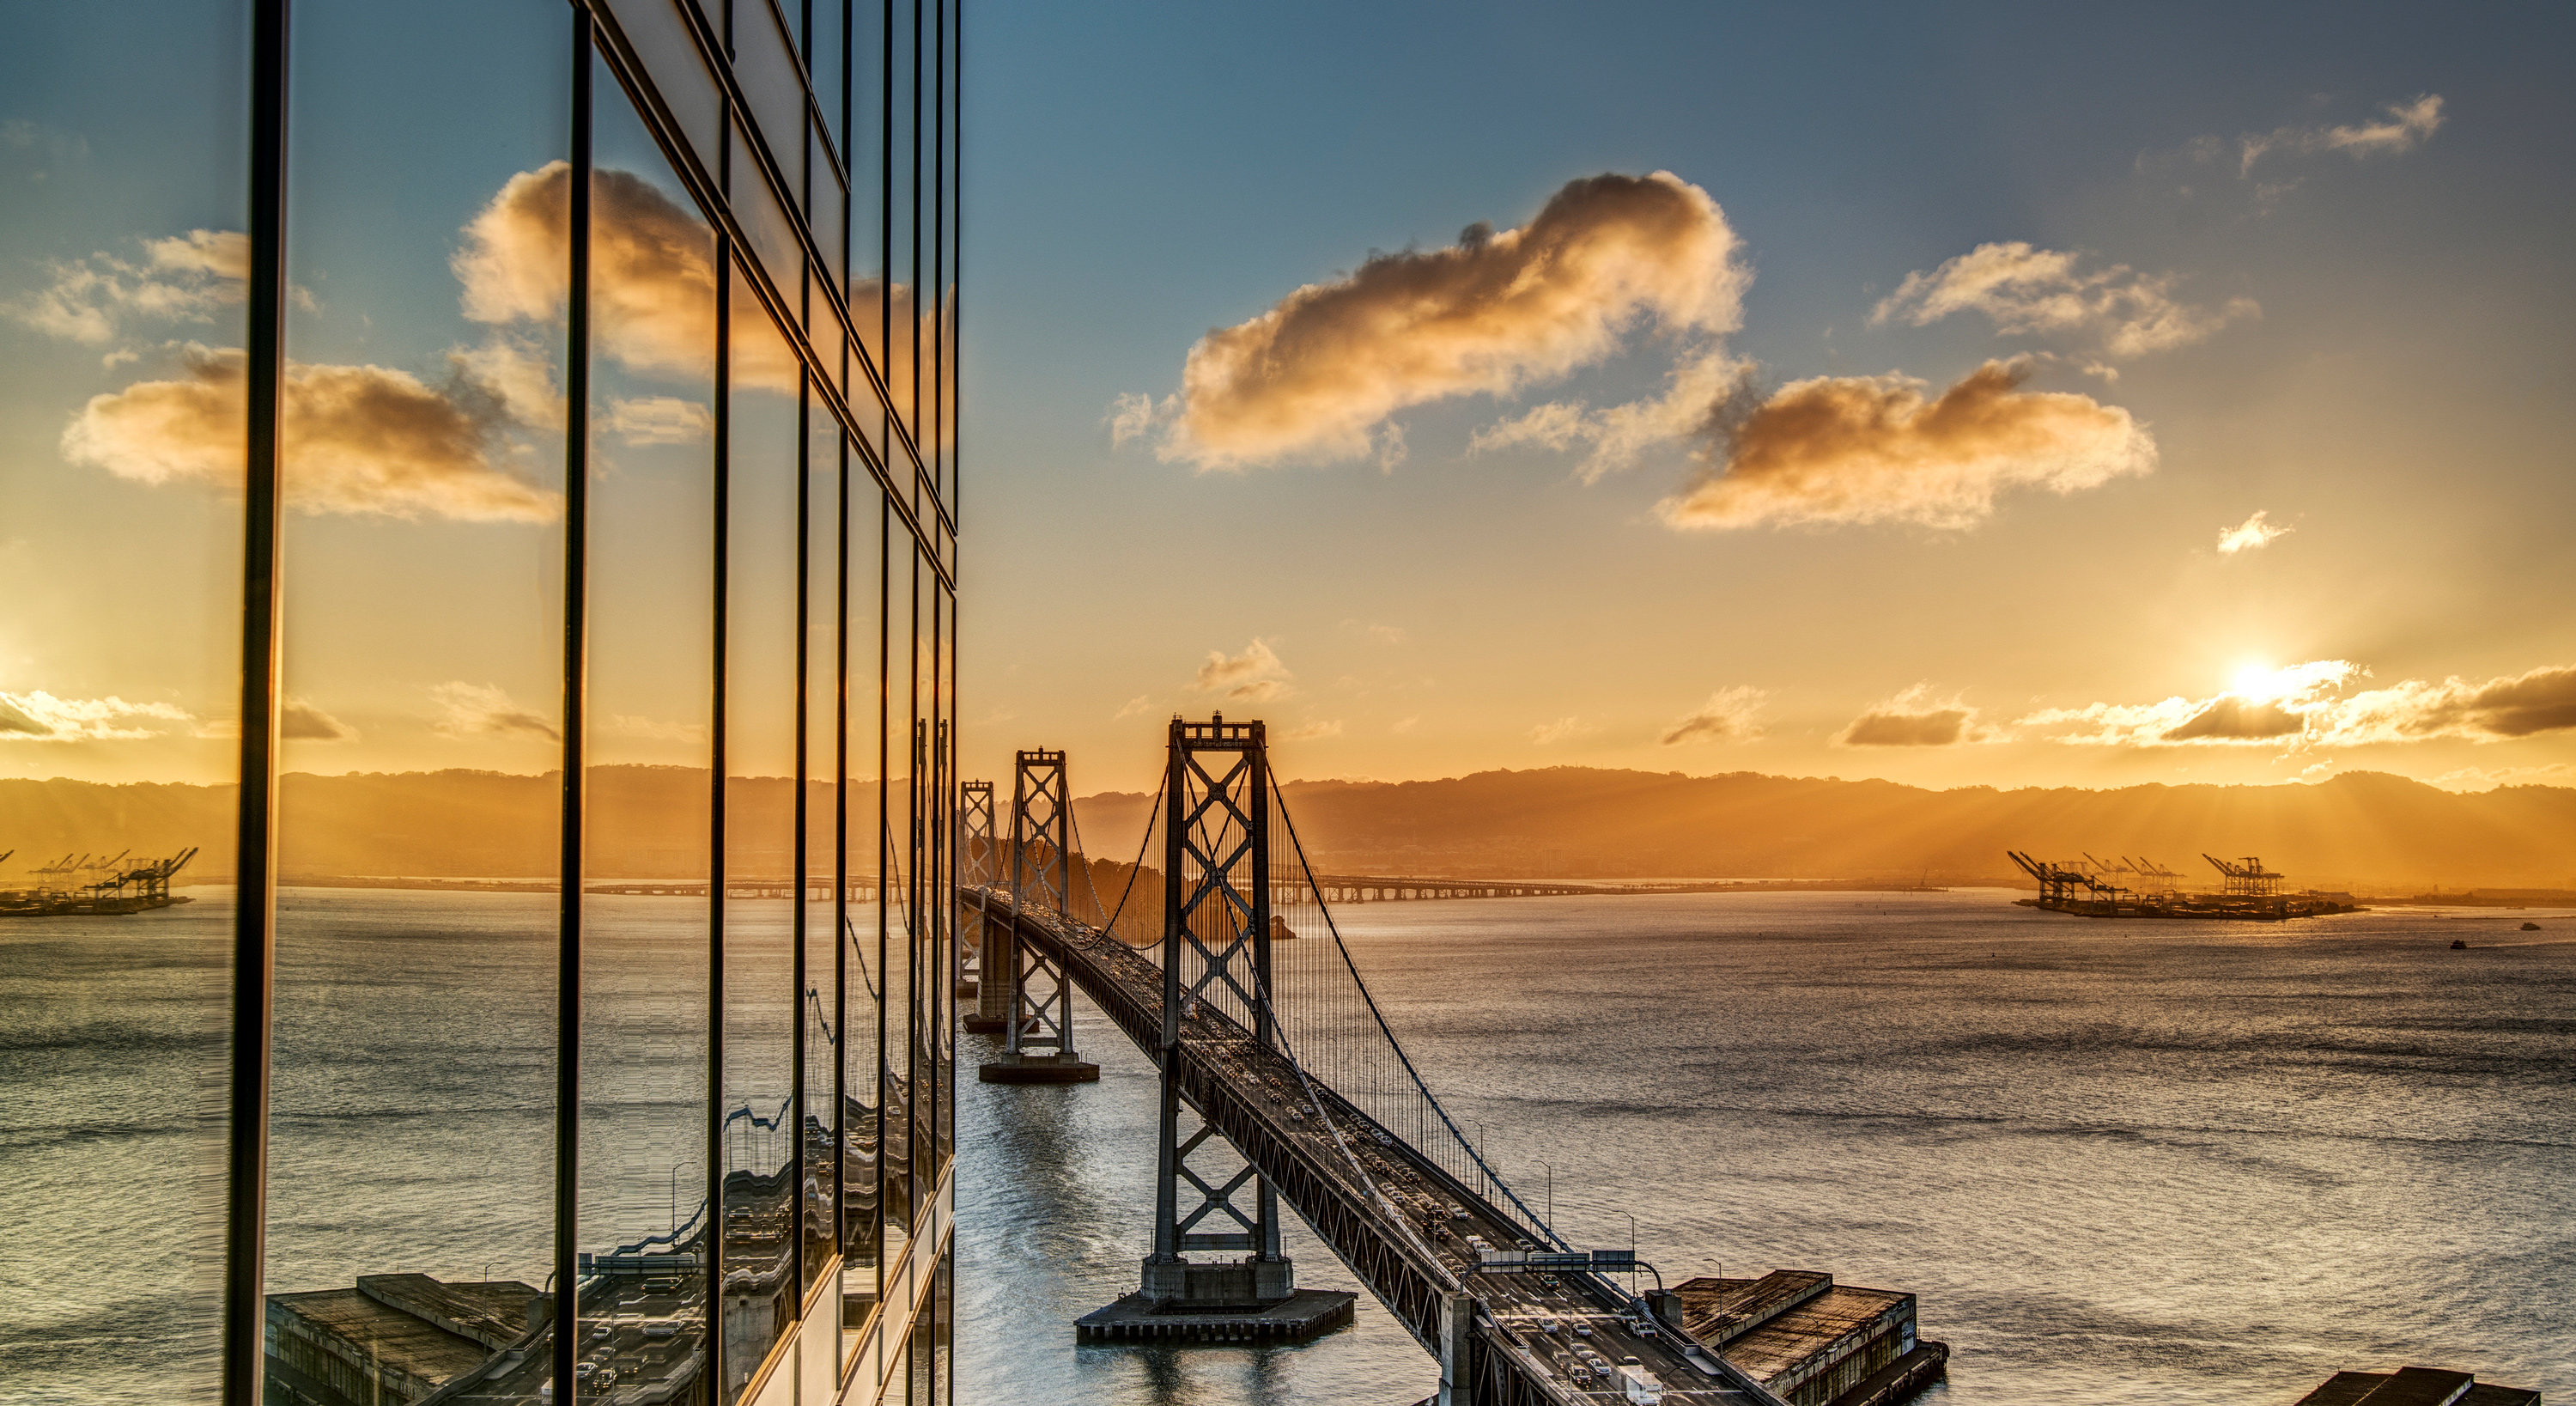 bay bridge, the harrison, luxury condo, san francisco